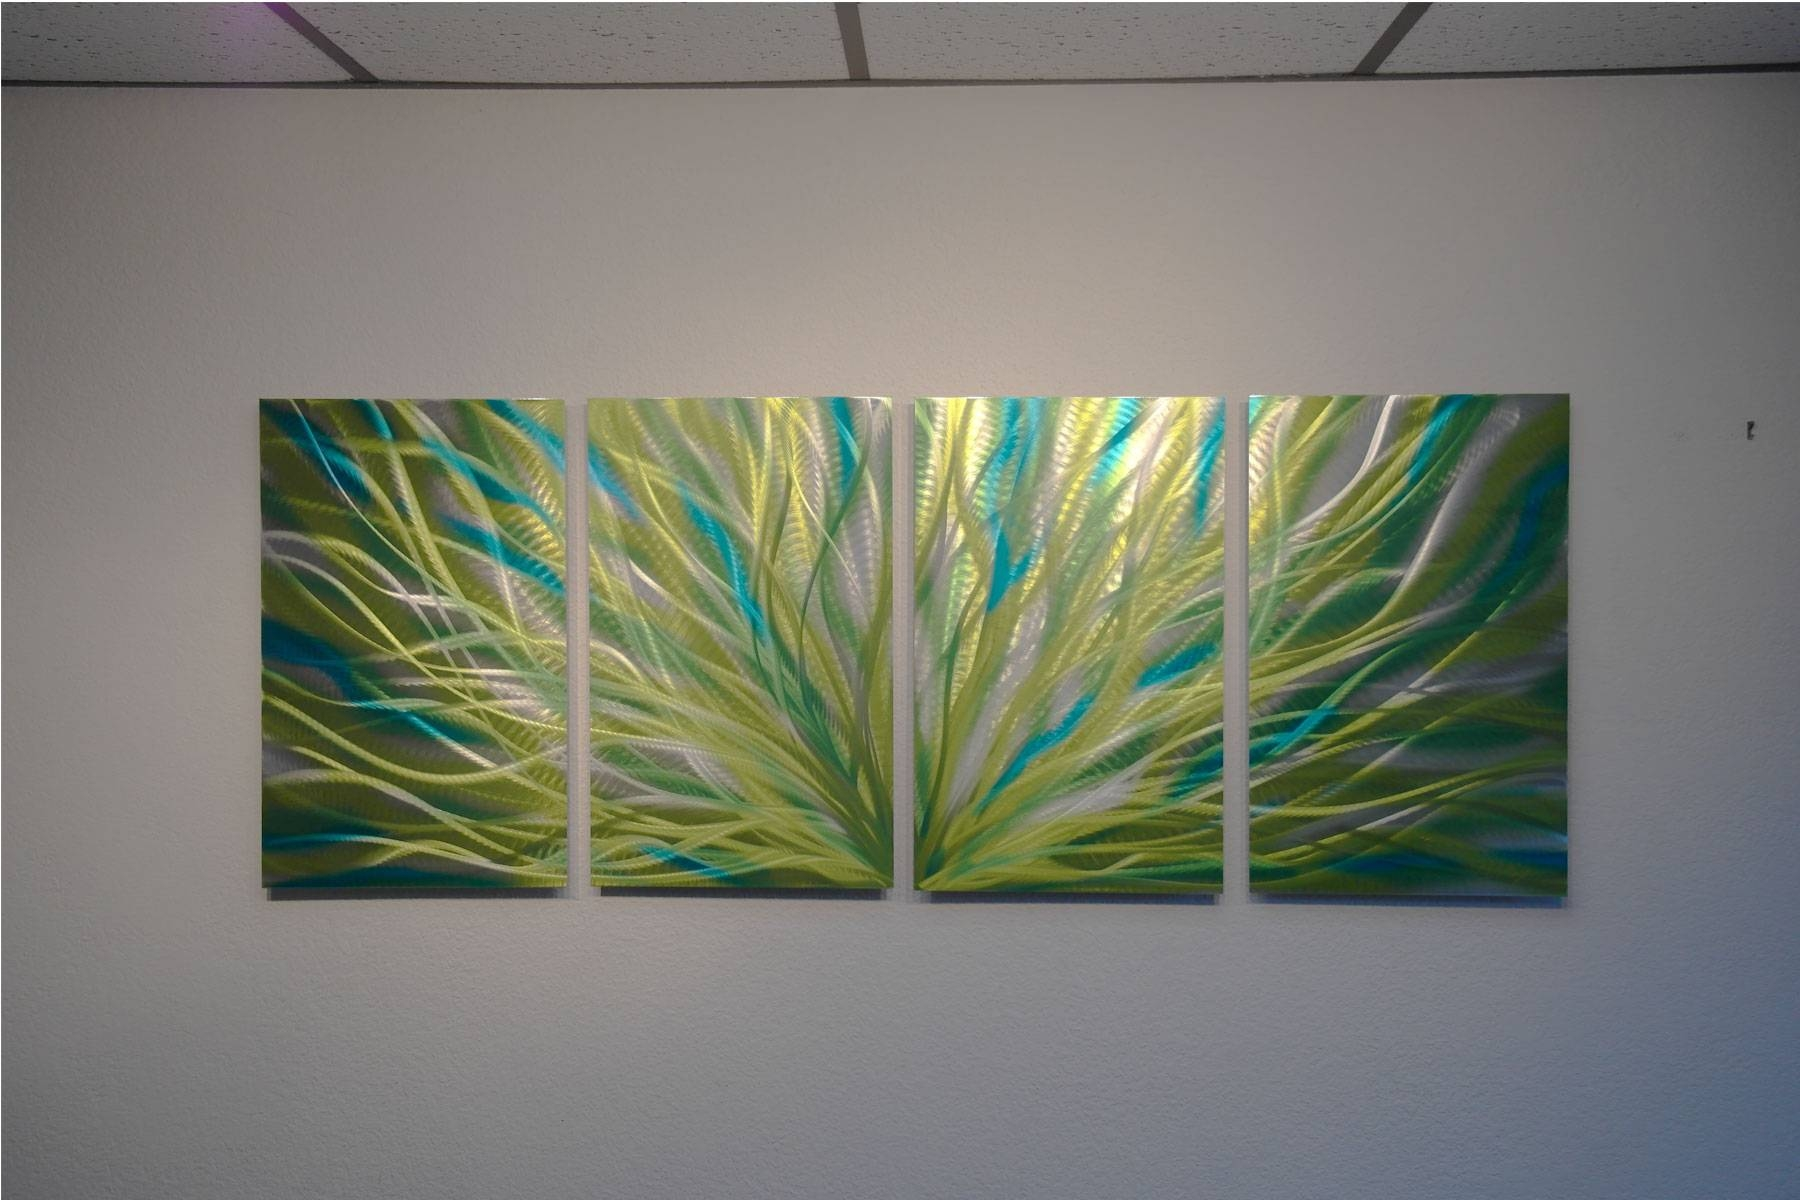 Radiance Cyan Chartreuse – Abstract Metal Wall Art Contemporary In Most Recent Abstract Metal Wall Art (View 7 of 20)